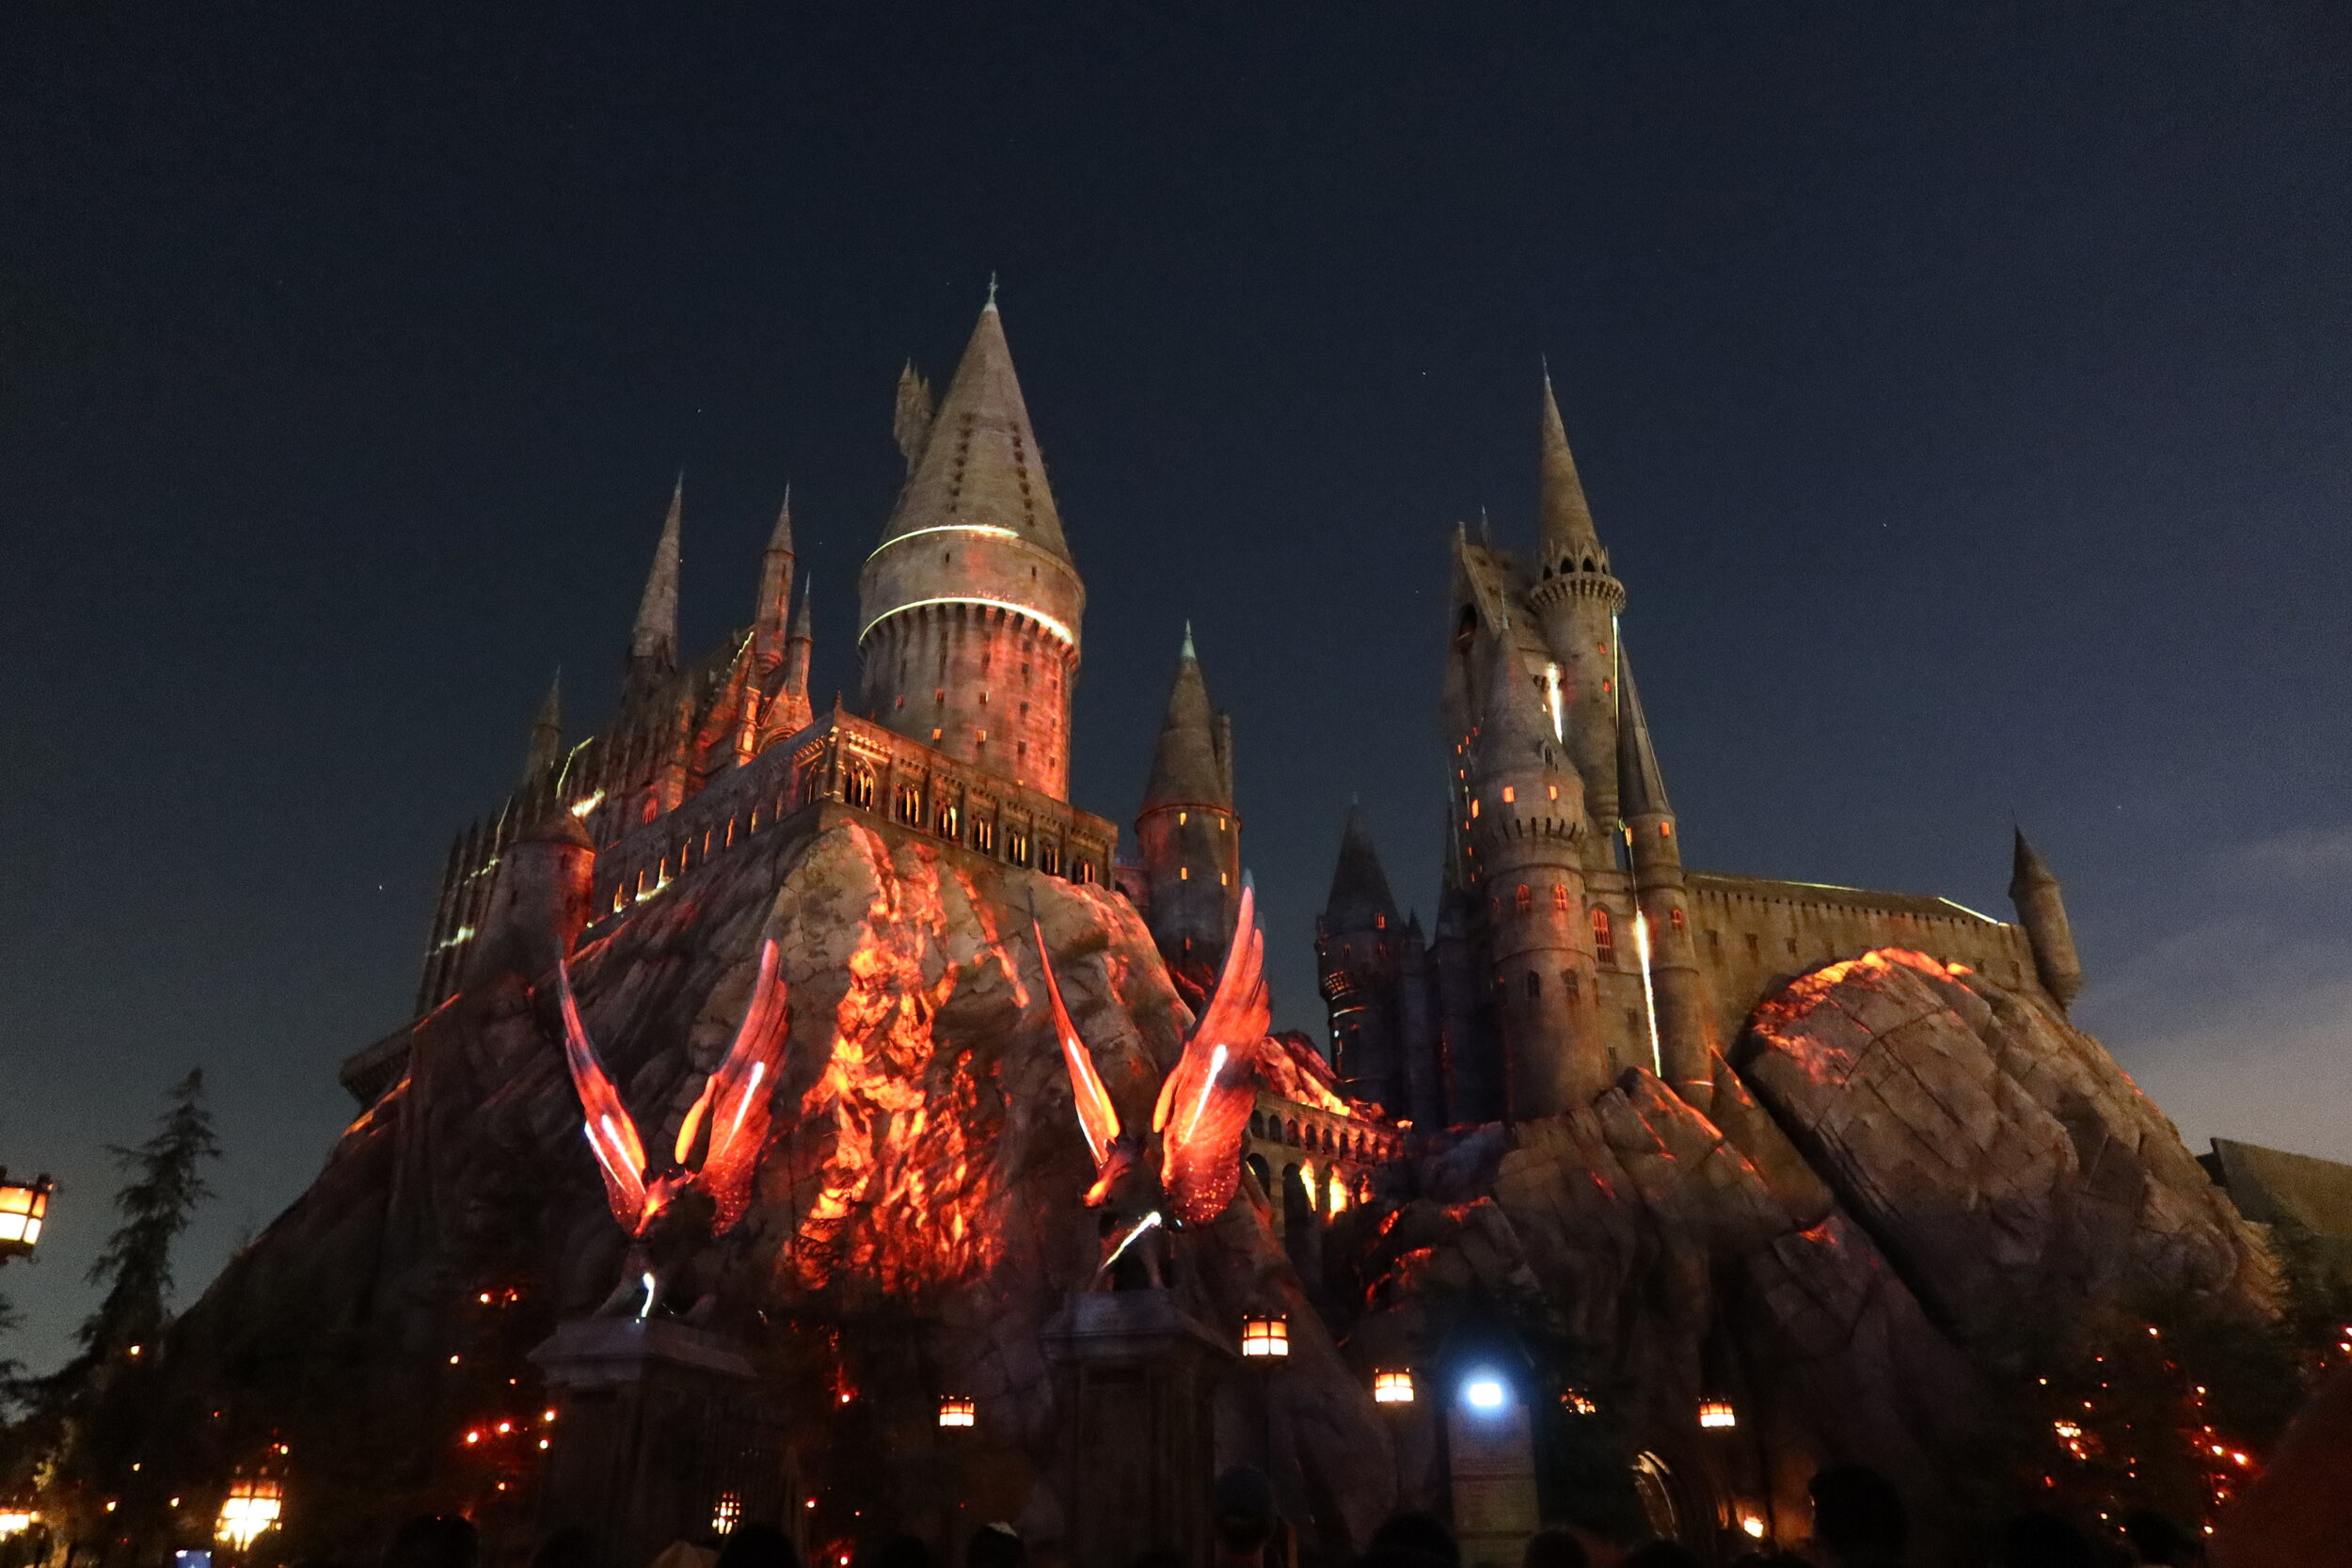 Hogwarts - The night show was fantastic. I wouldn't write home about it but it was good.